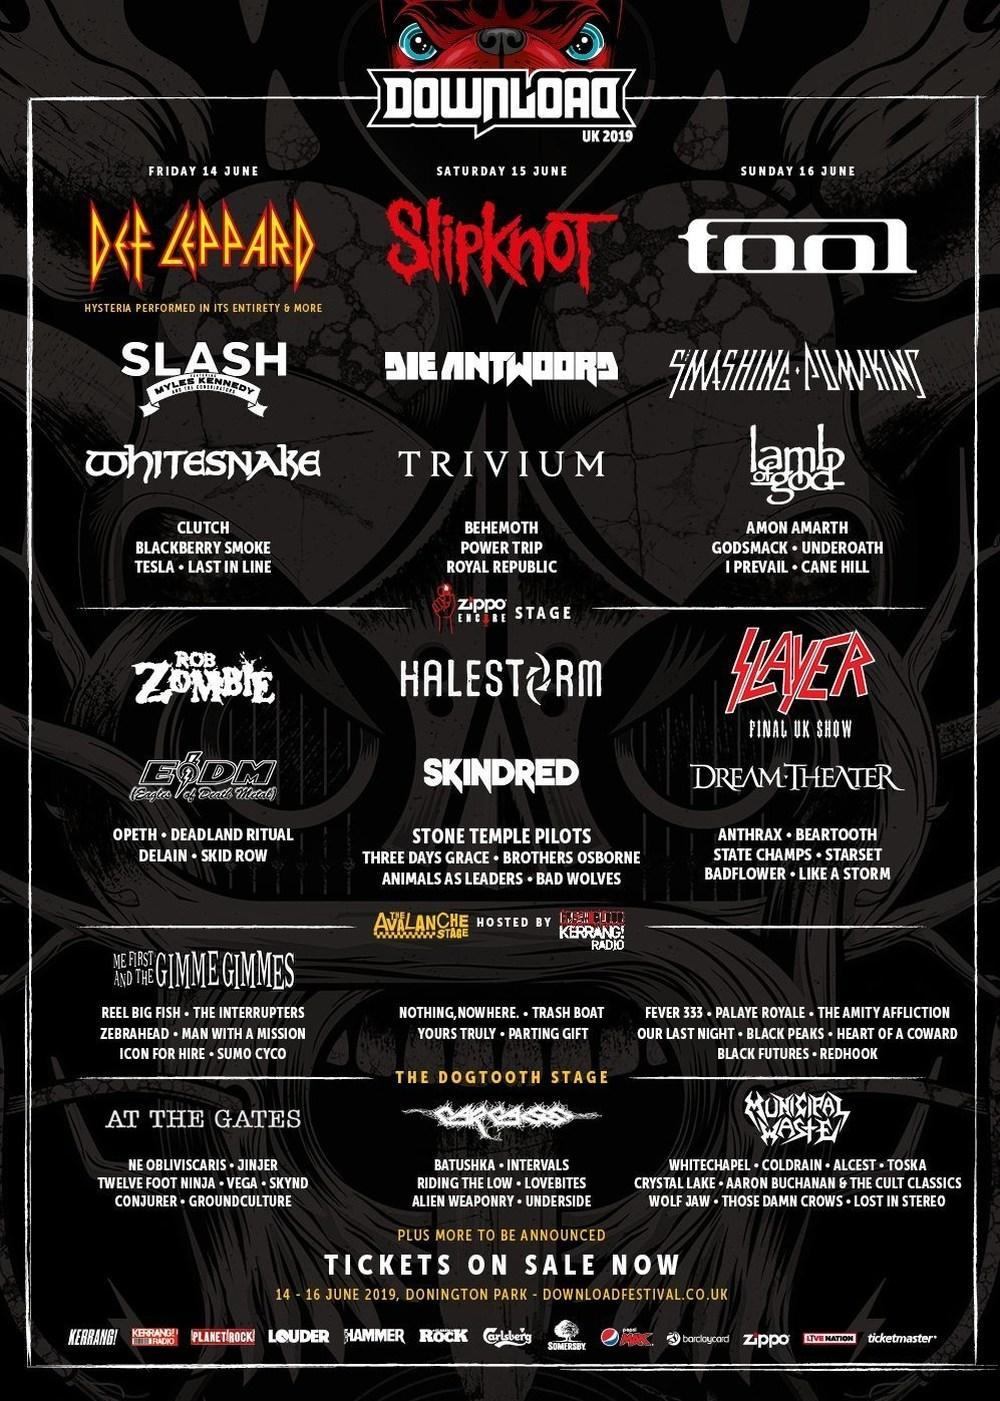 Download Festival Tickets 5 Nights Early Bird Price and Parking Pass